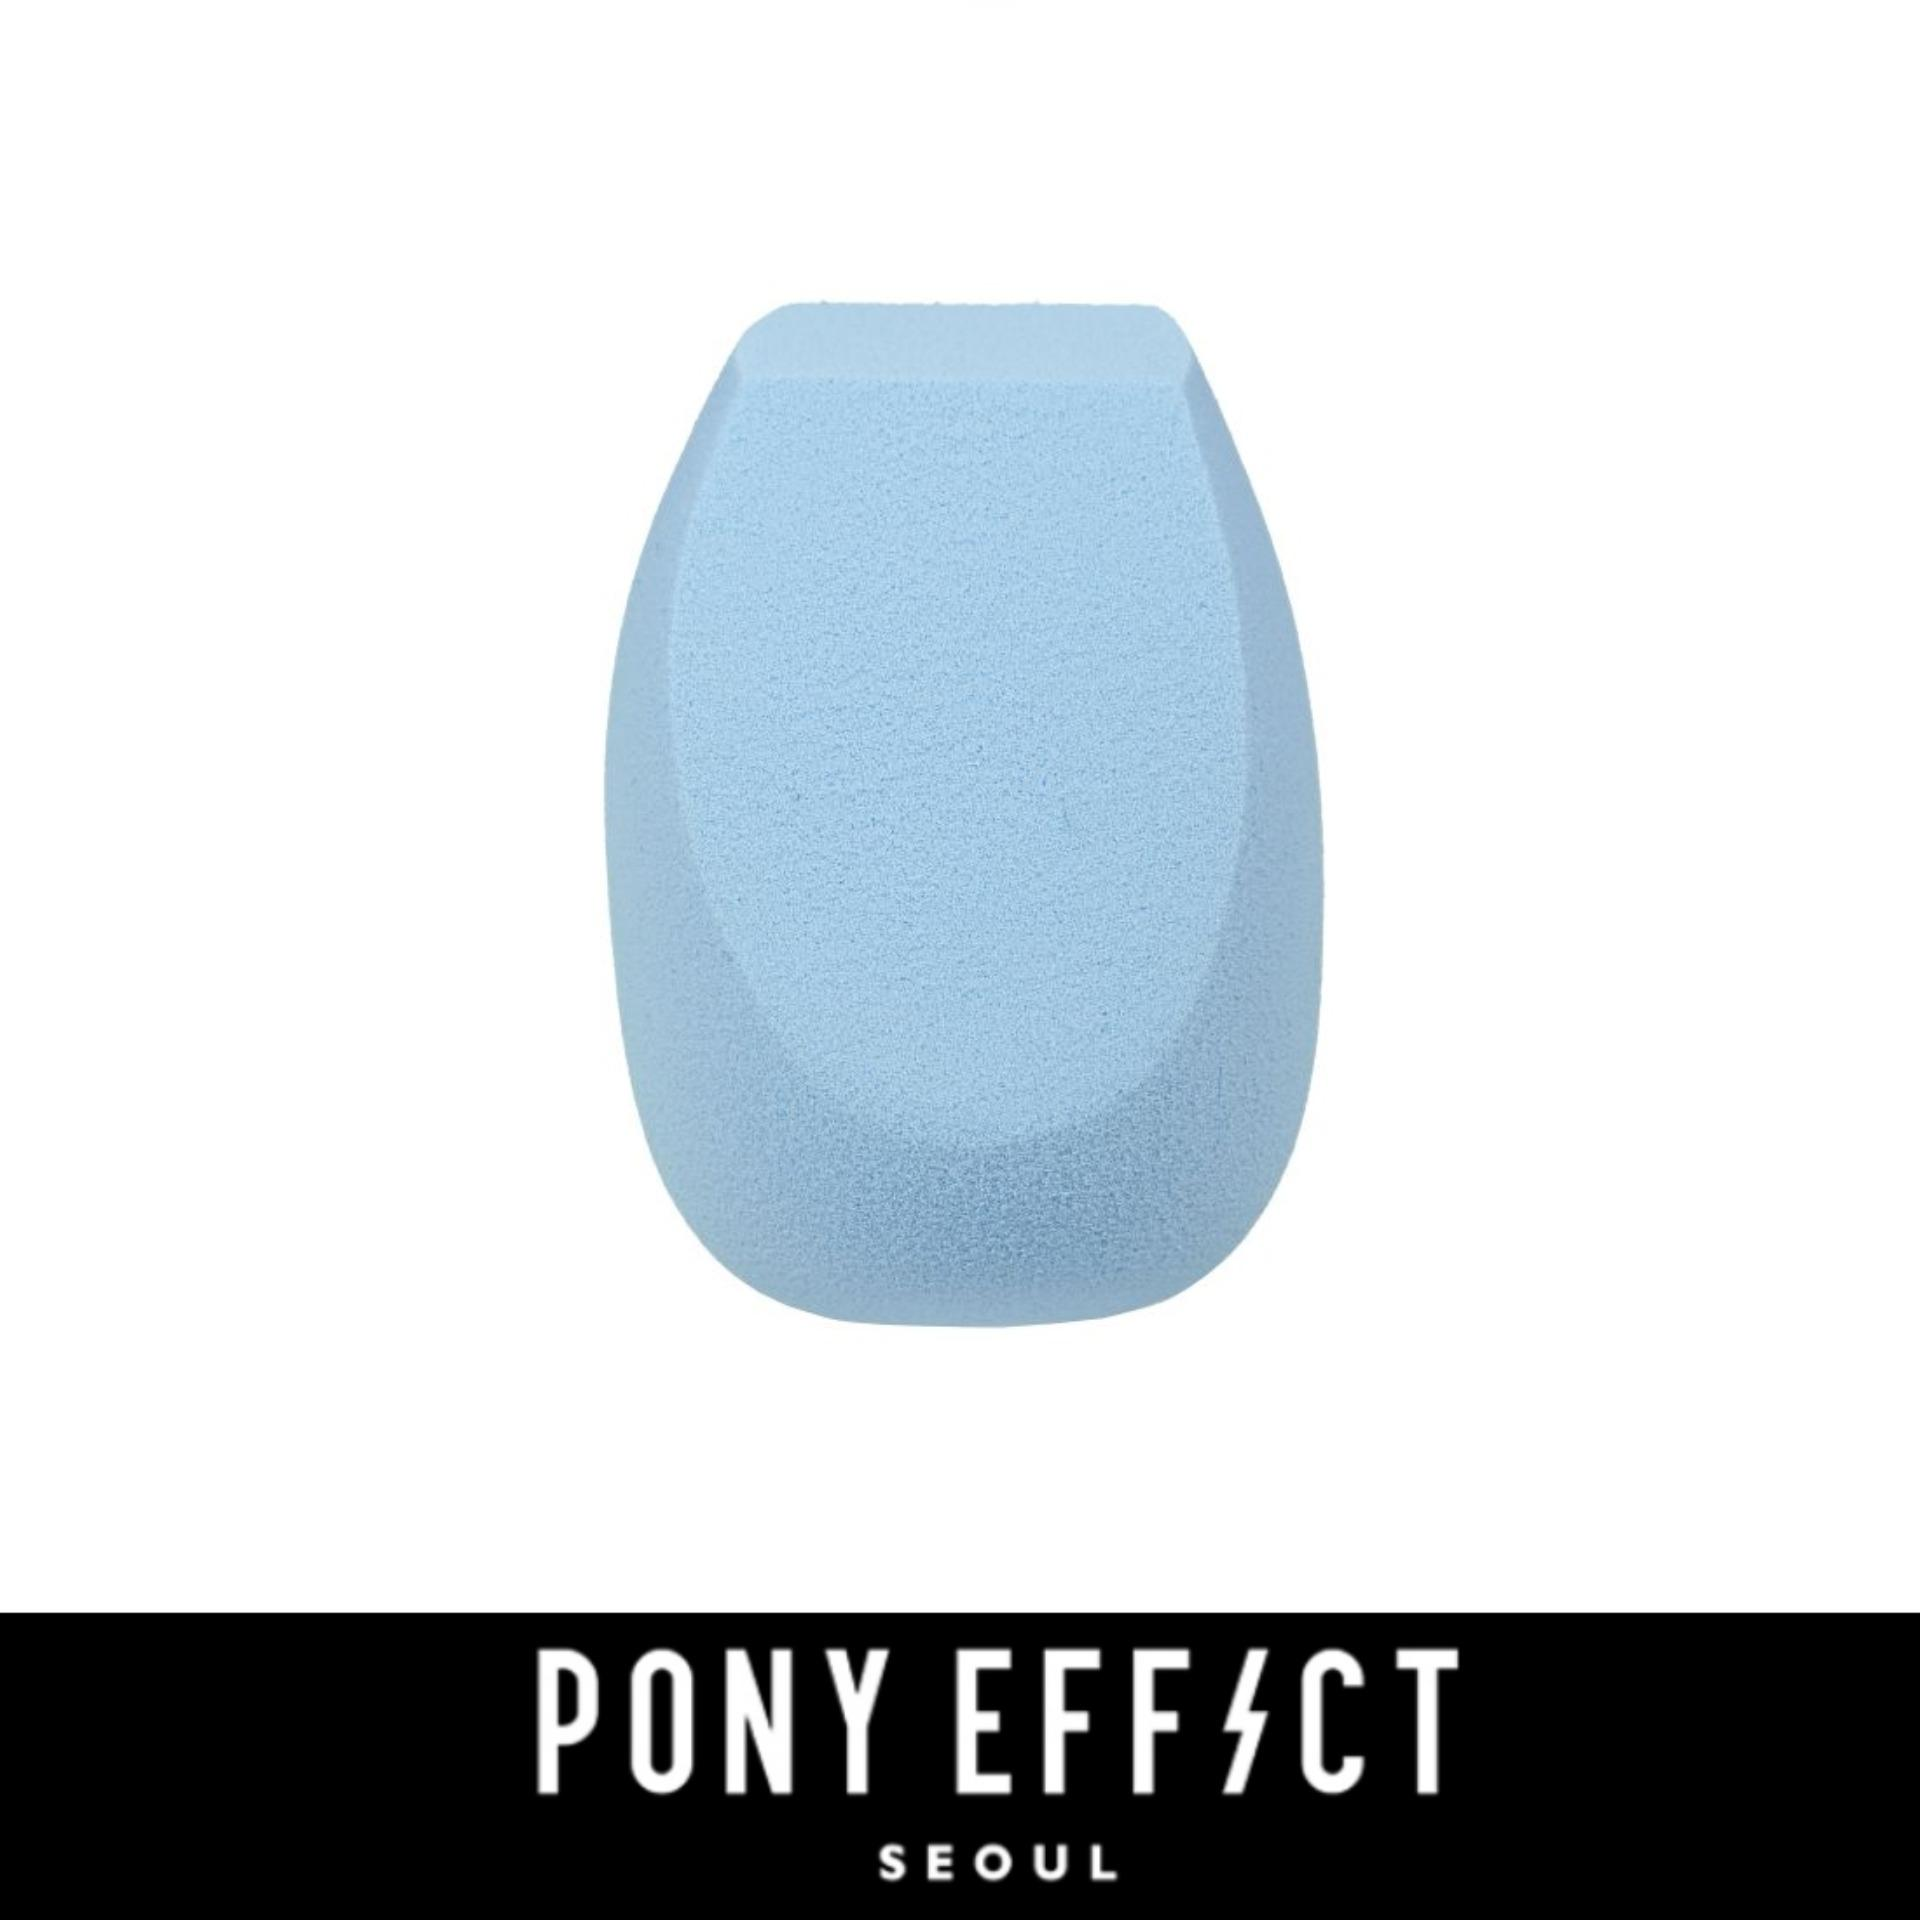 Pony Effect Pebble Blender Powder Blue By Pony Effect.